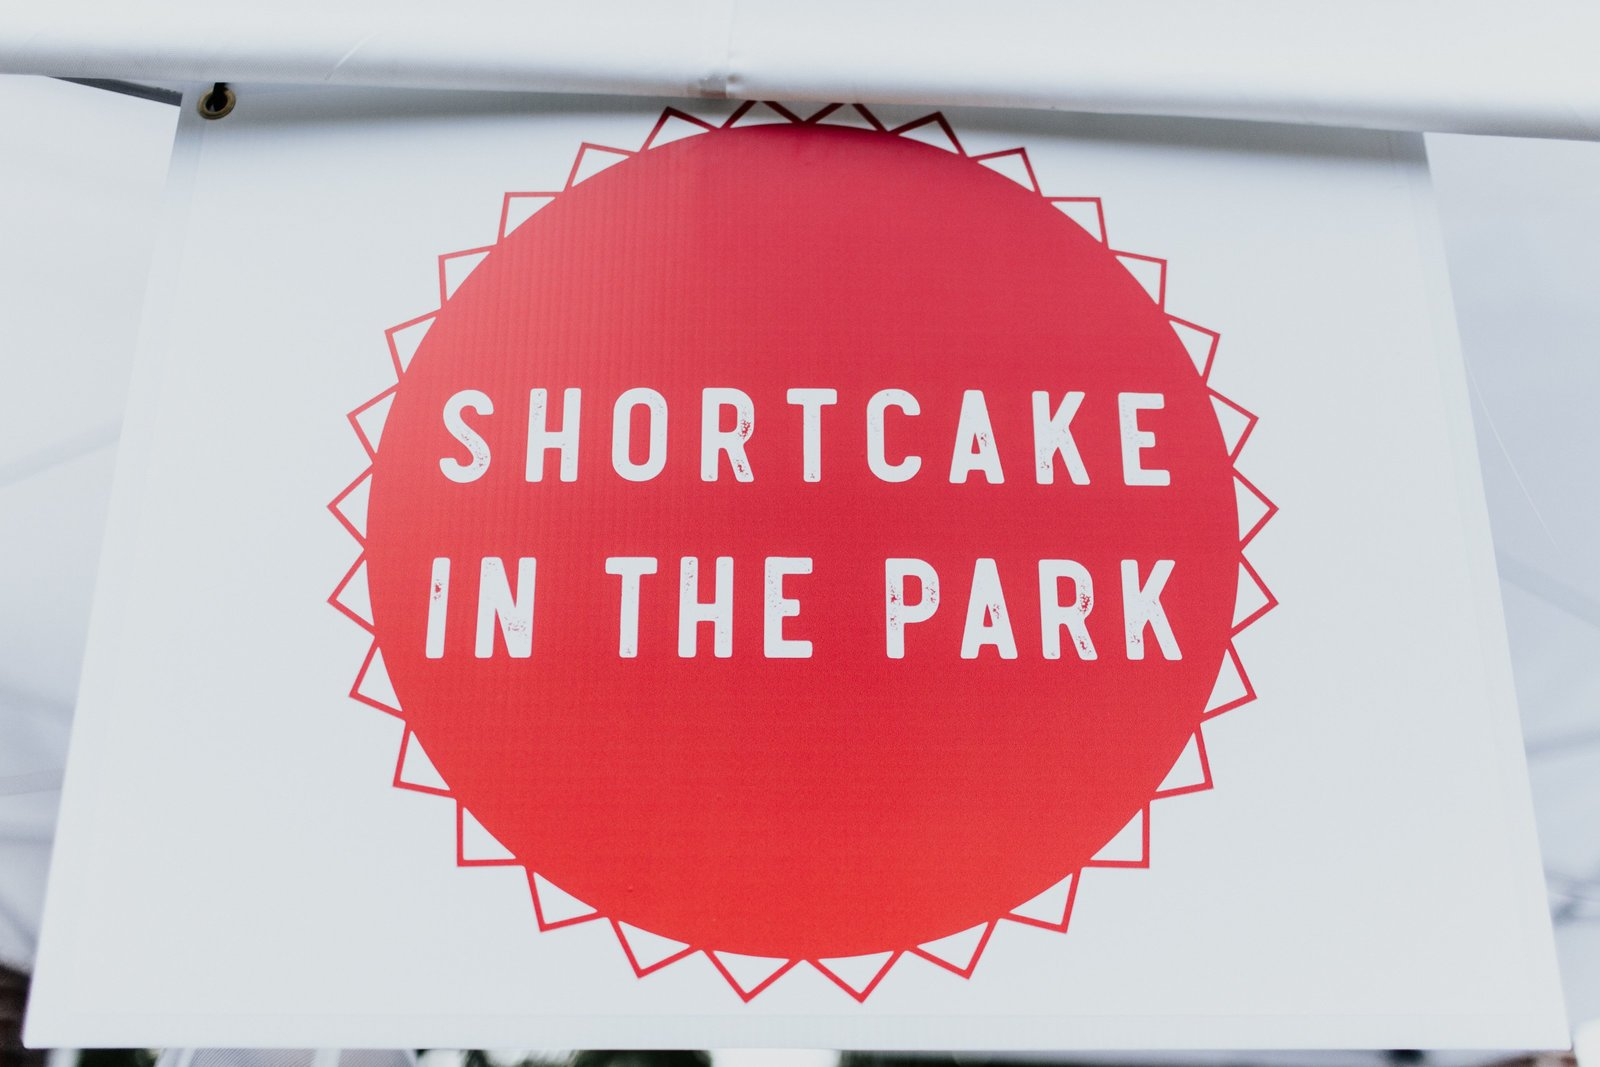 2019 West Tennessee Strawberry Festival - Shortcake in the park - 24